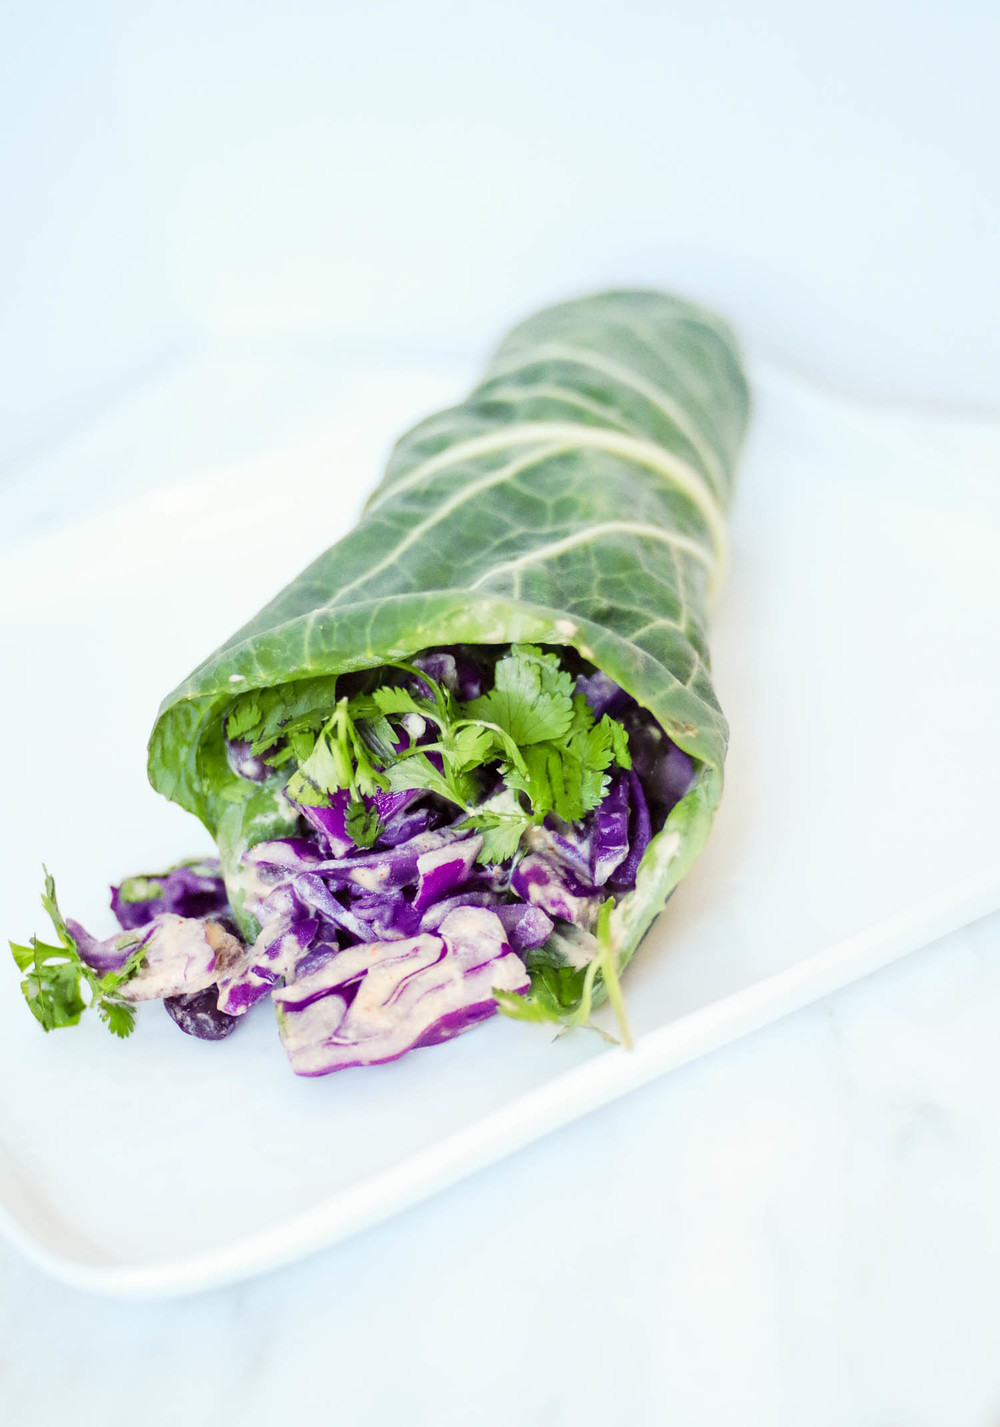 Collard green burrito wrap.